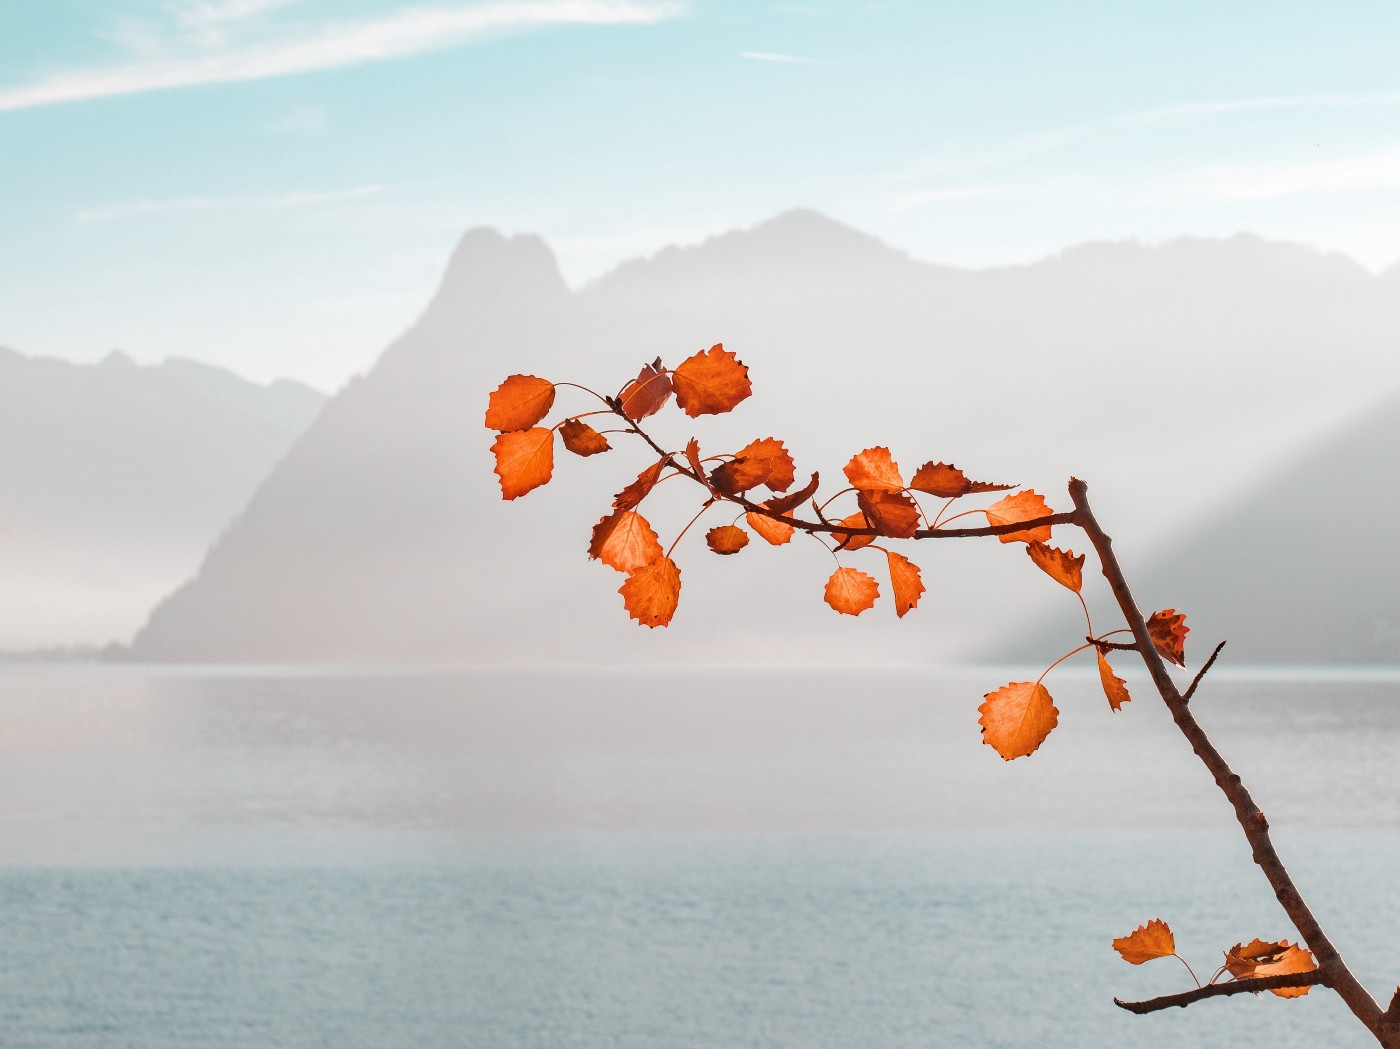 Branch with orange leaves in front of lake